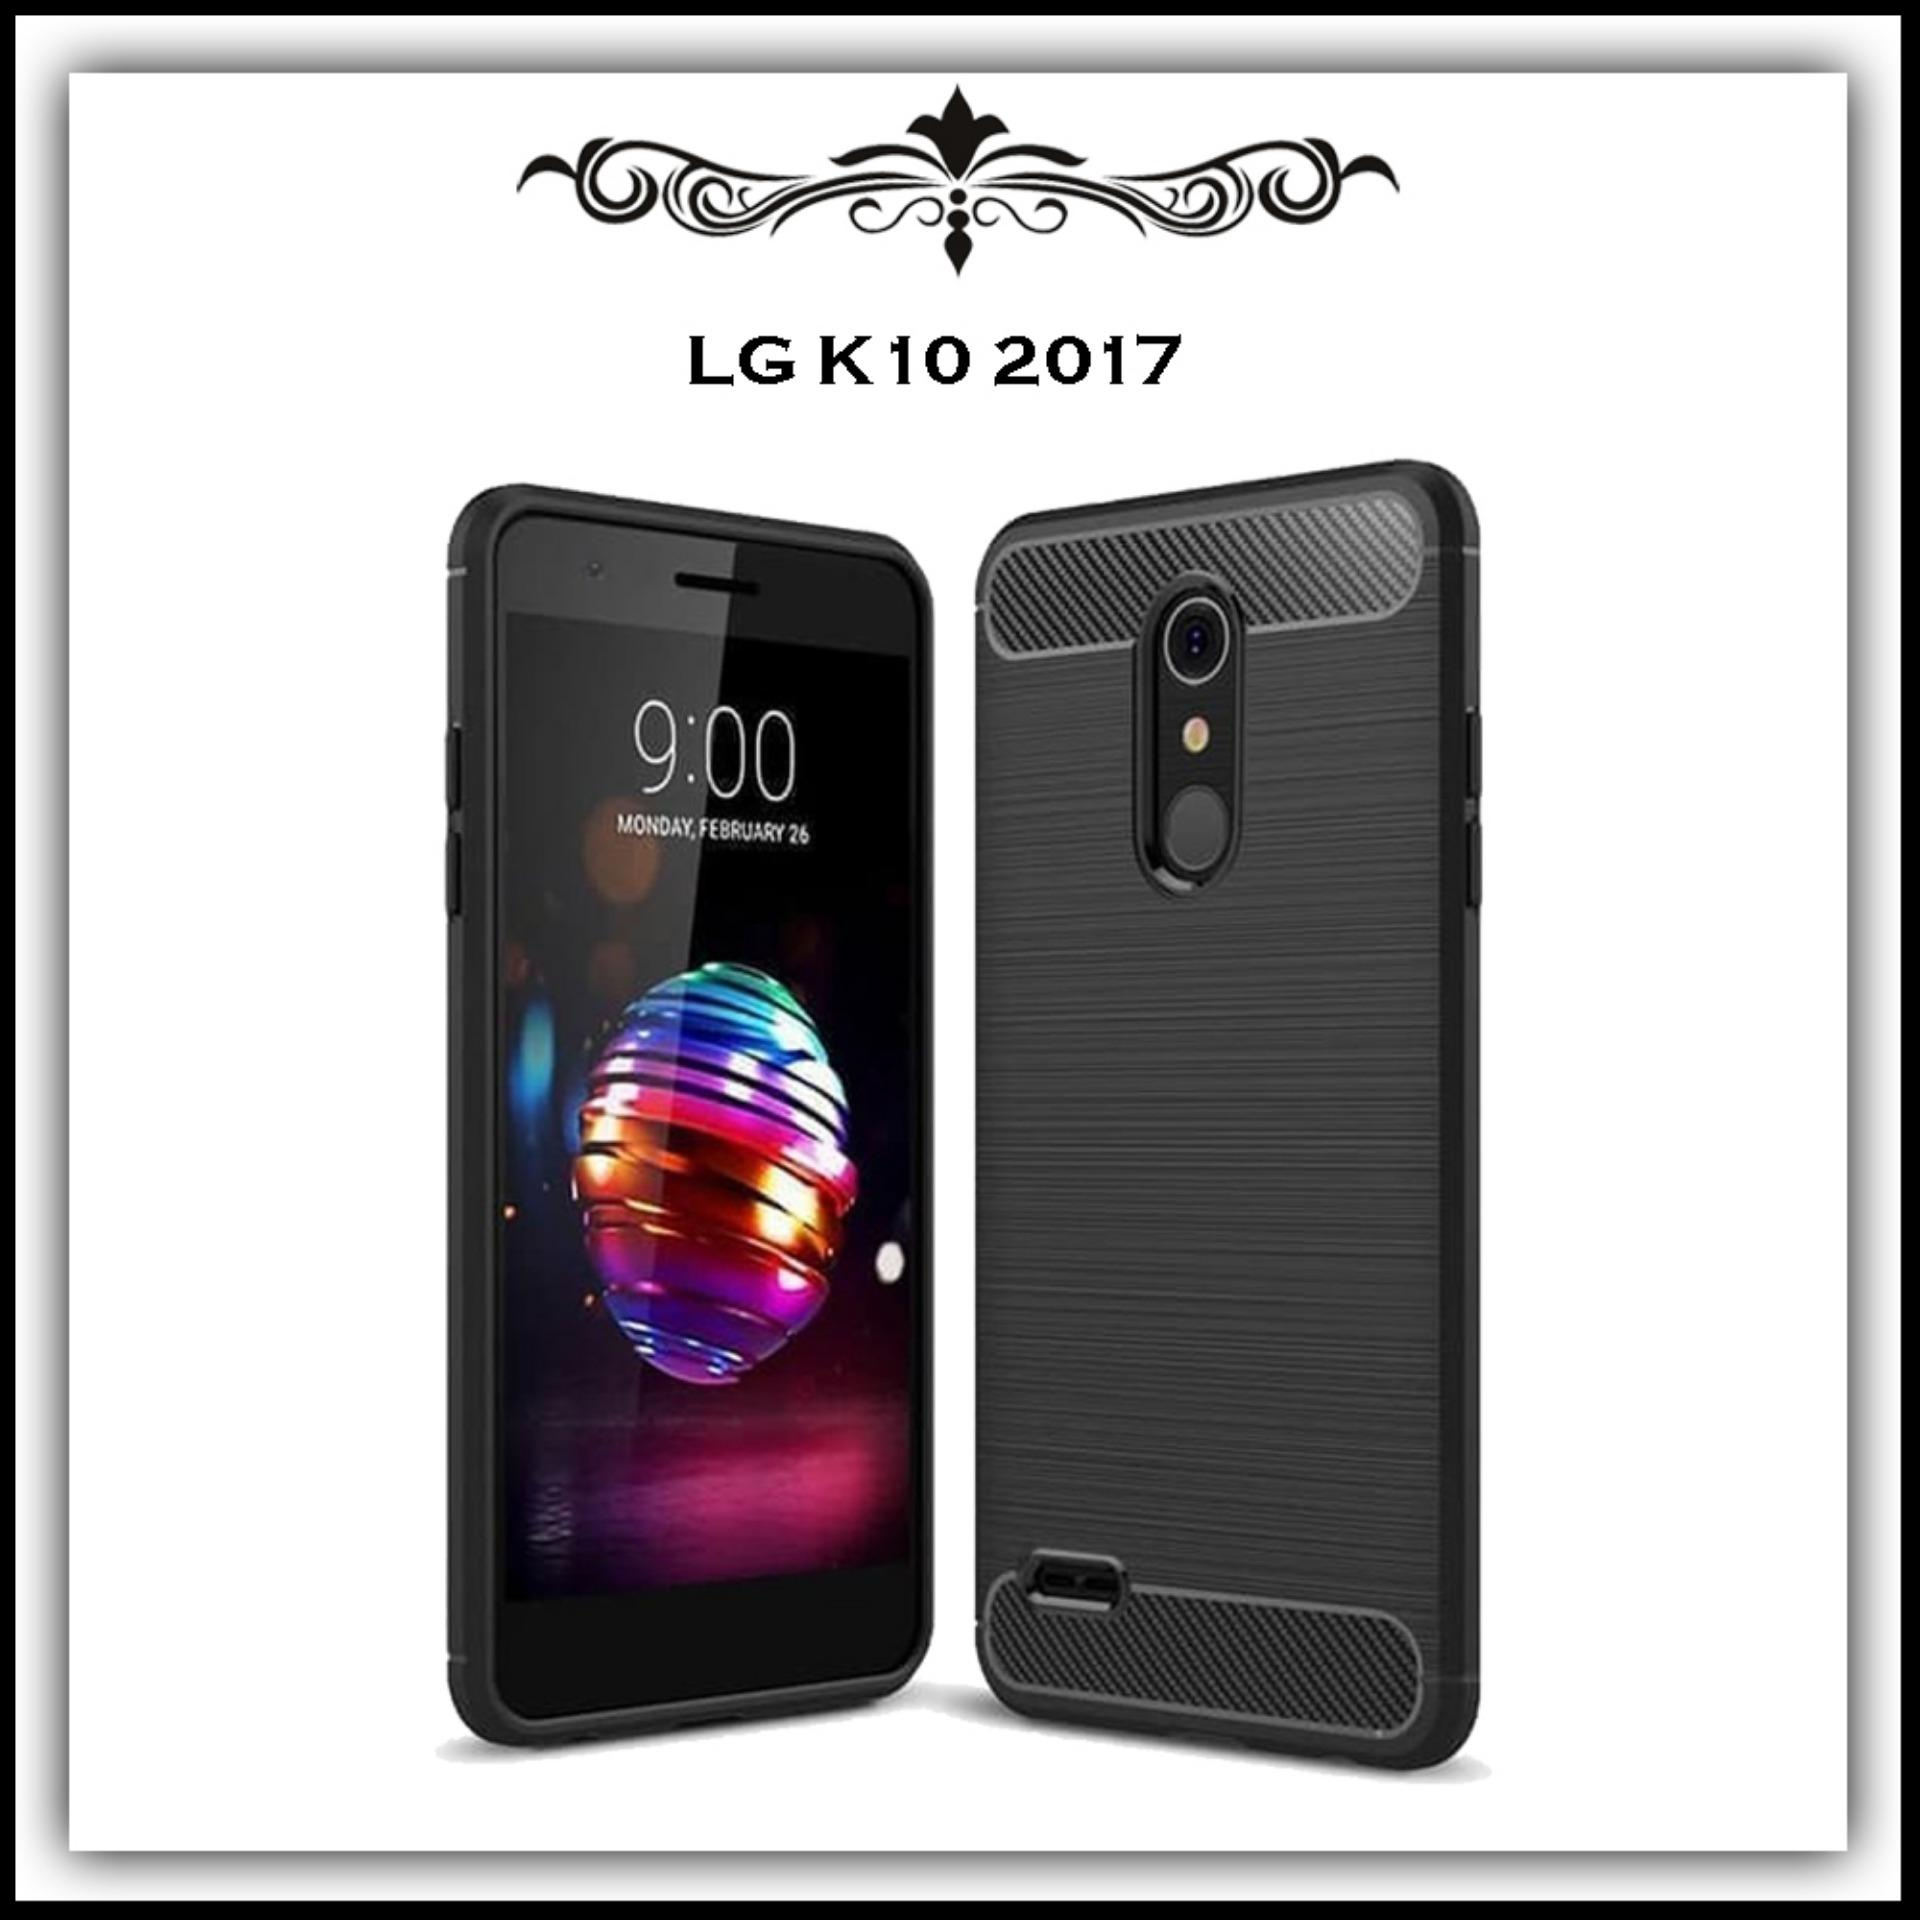 Mushroom Case Ipaky Carbon Fiber Shockproof Hybrid Elegant Case for LG K10 2017